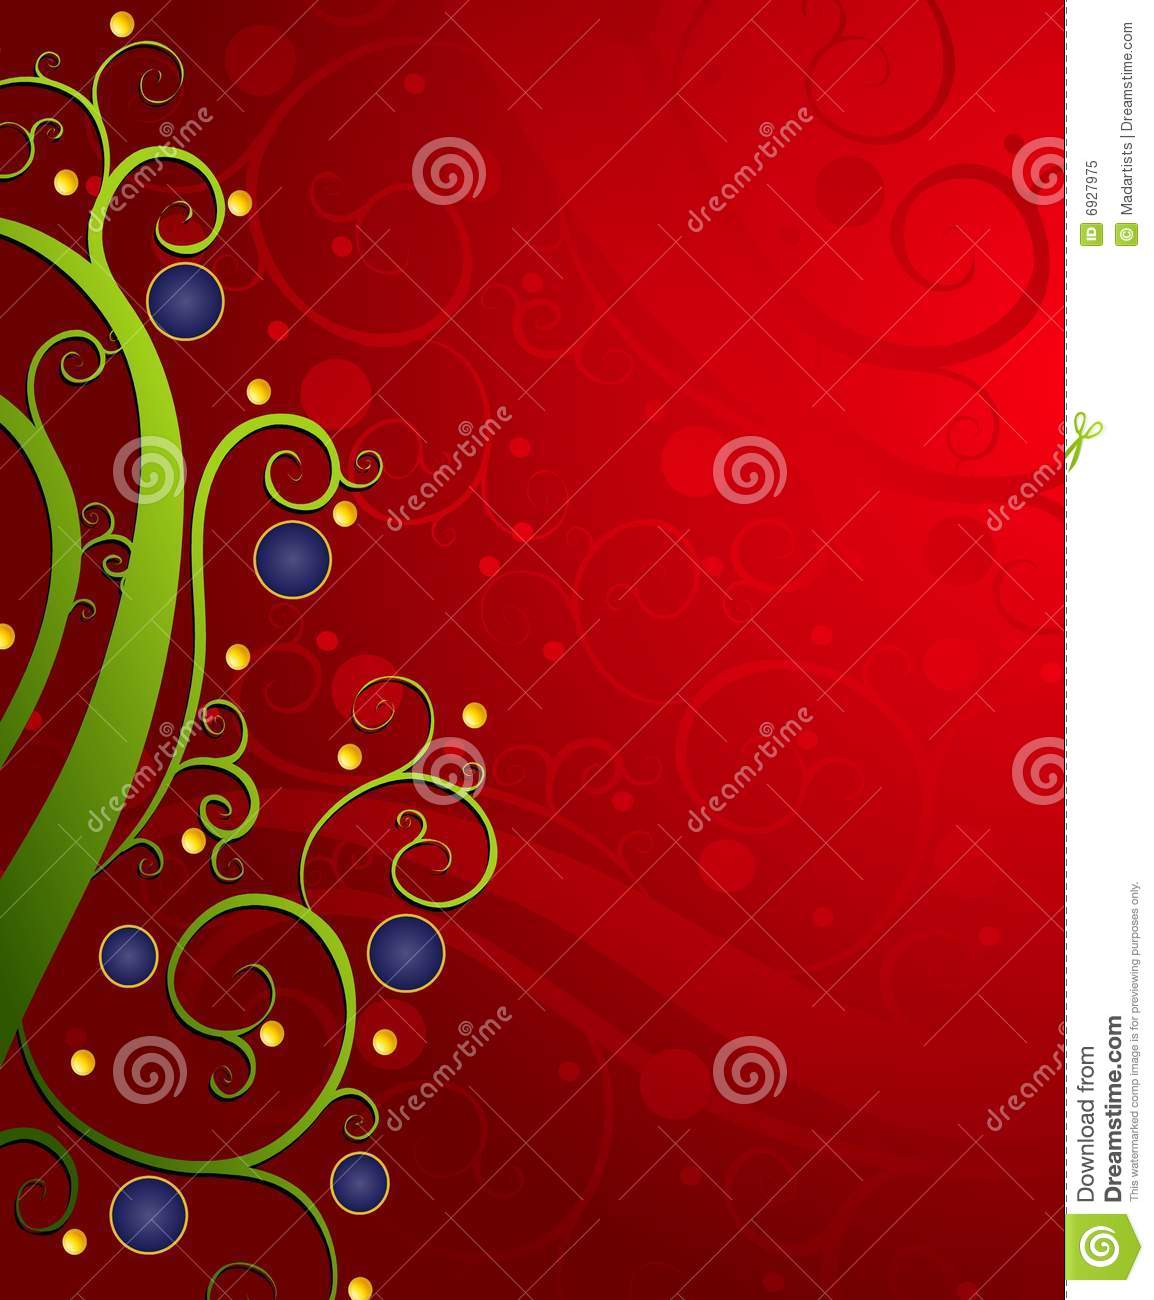 Xmas background images - Abstract Xmas Background